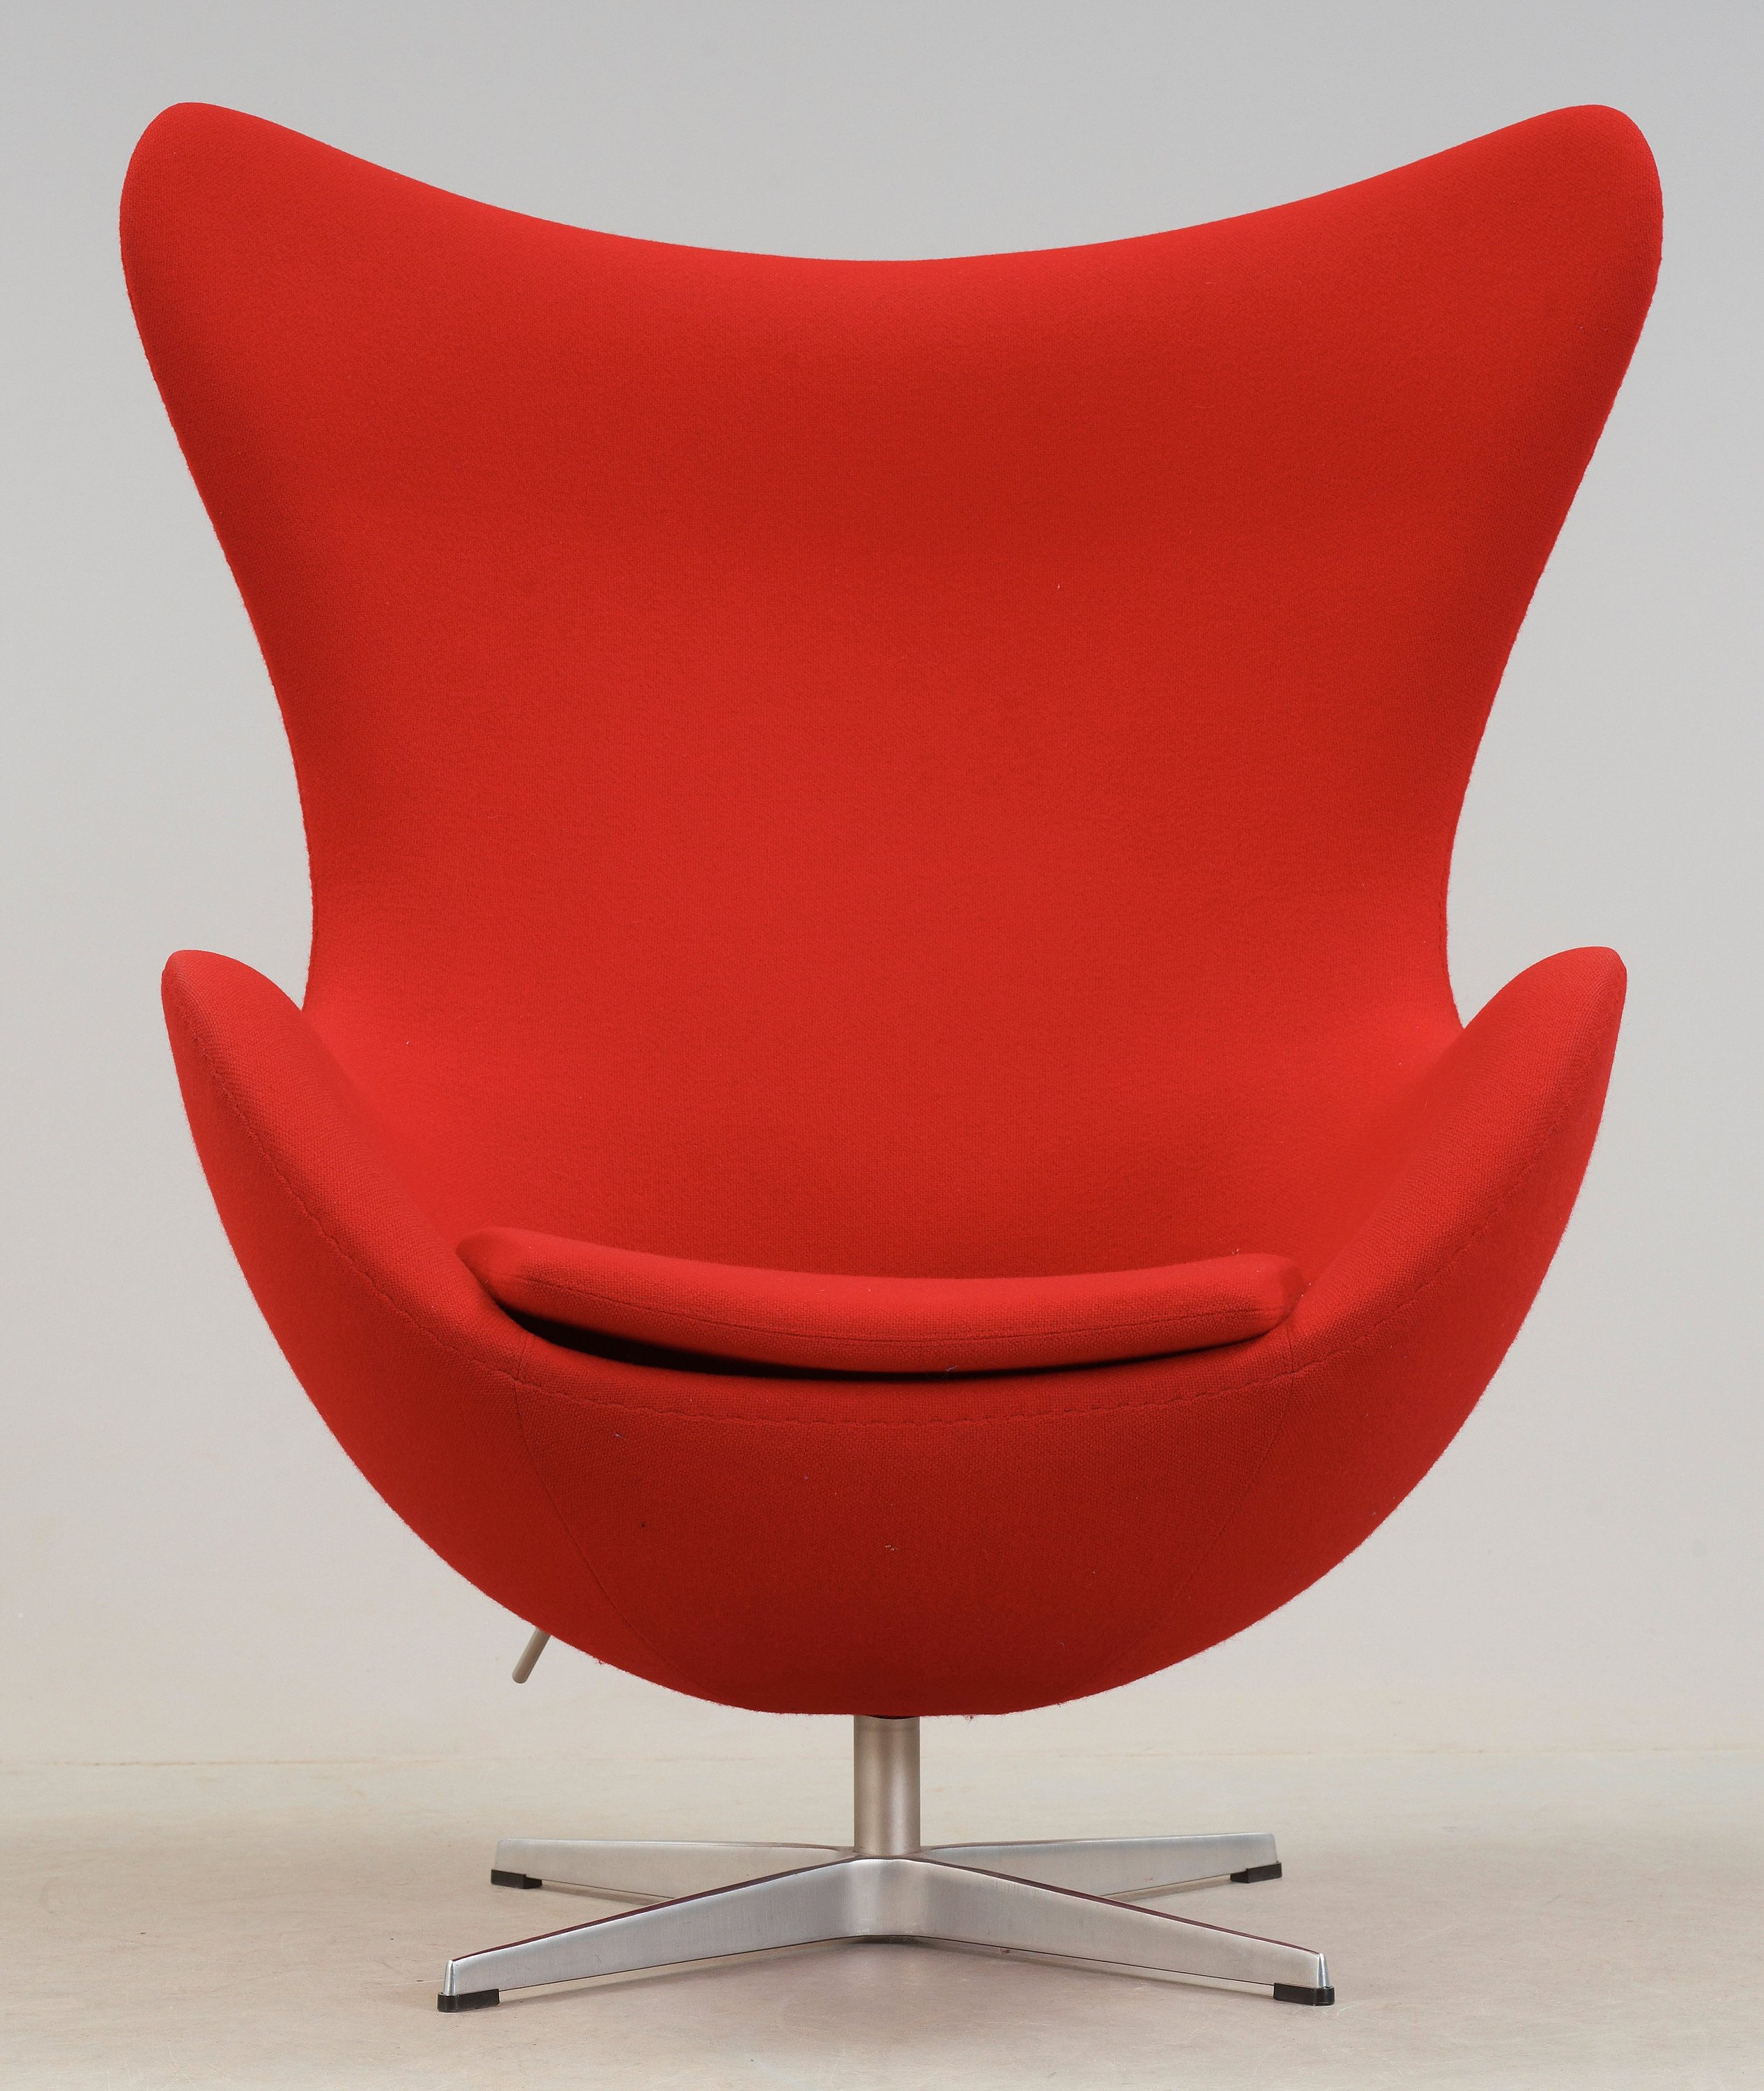 An Arne Jacobsen Red Fabric Egg Chair Fritz Hansen Denmark 2002 Bukowskis